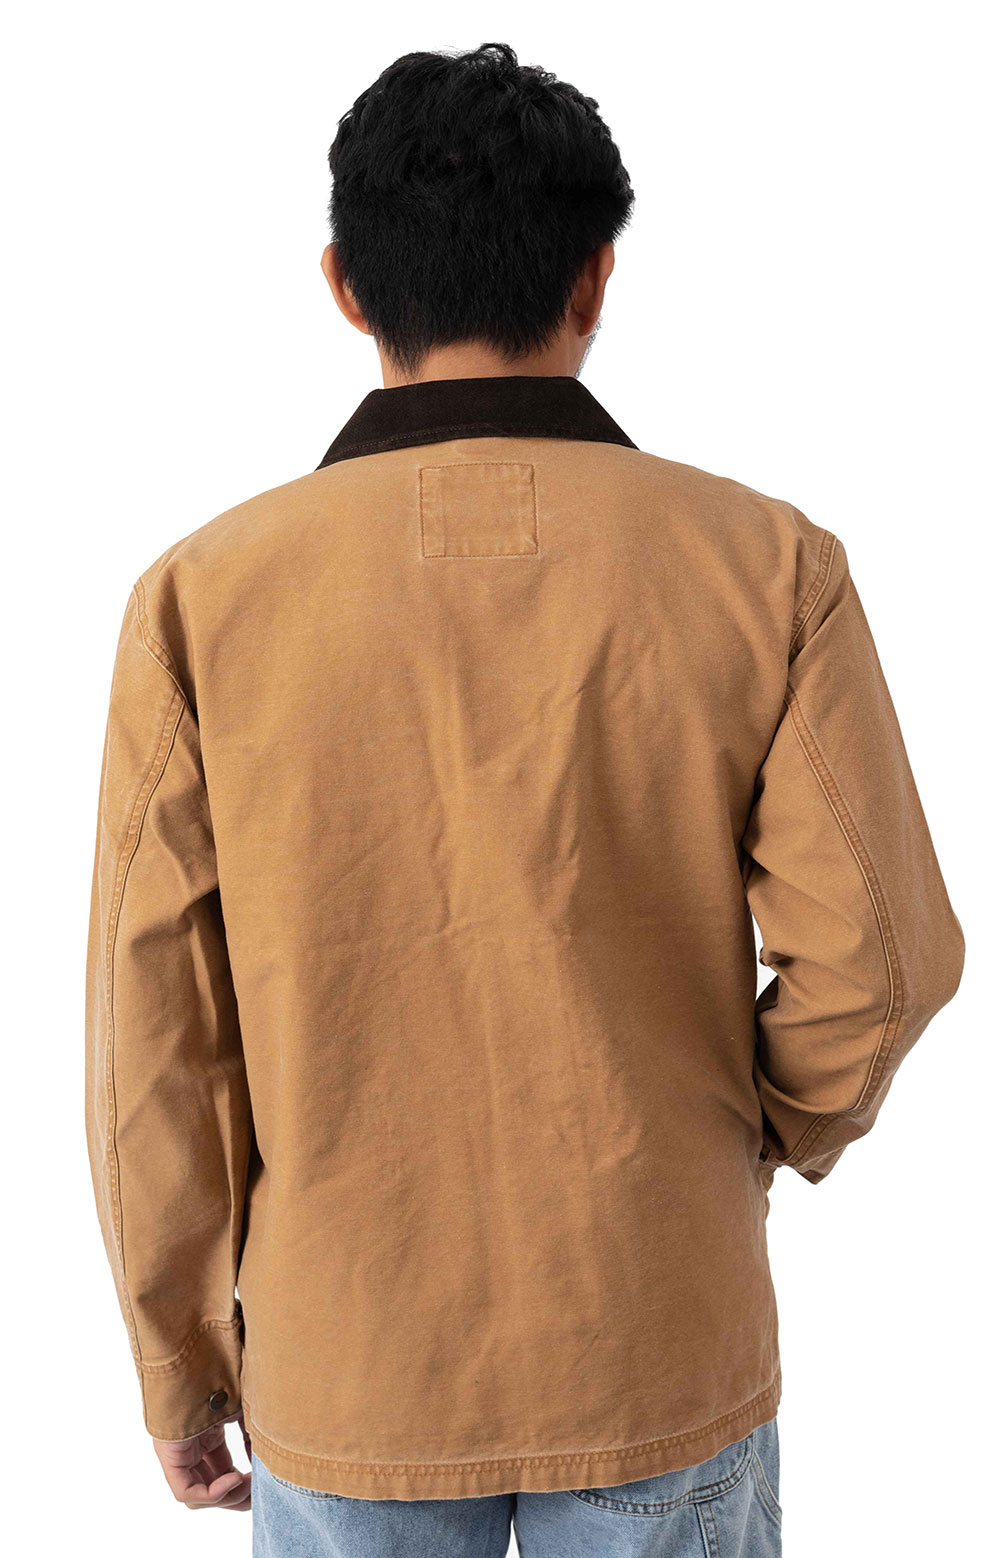 Chainmail Chore Jacket - Camel  3